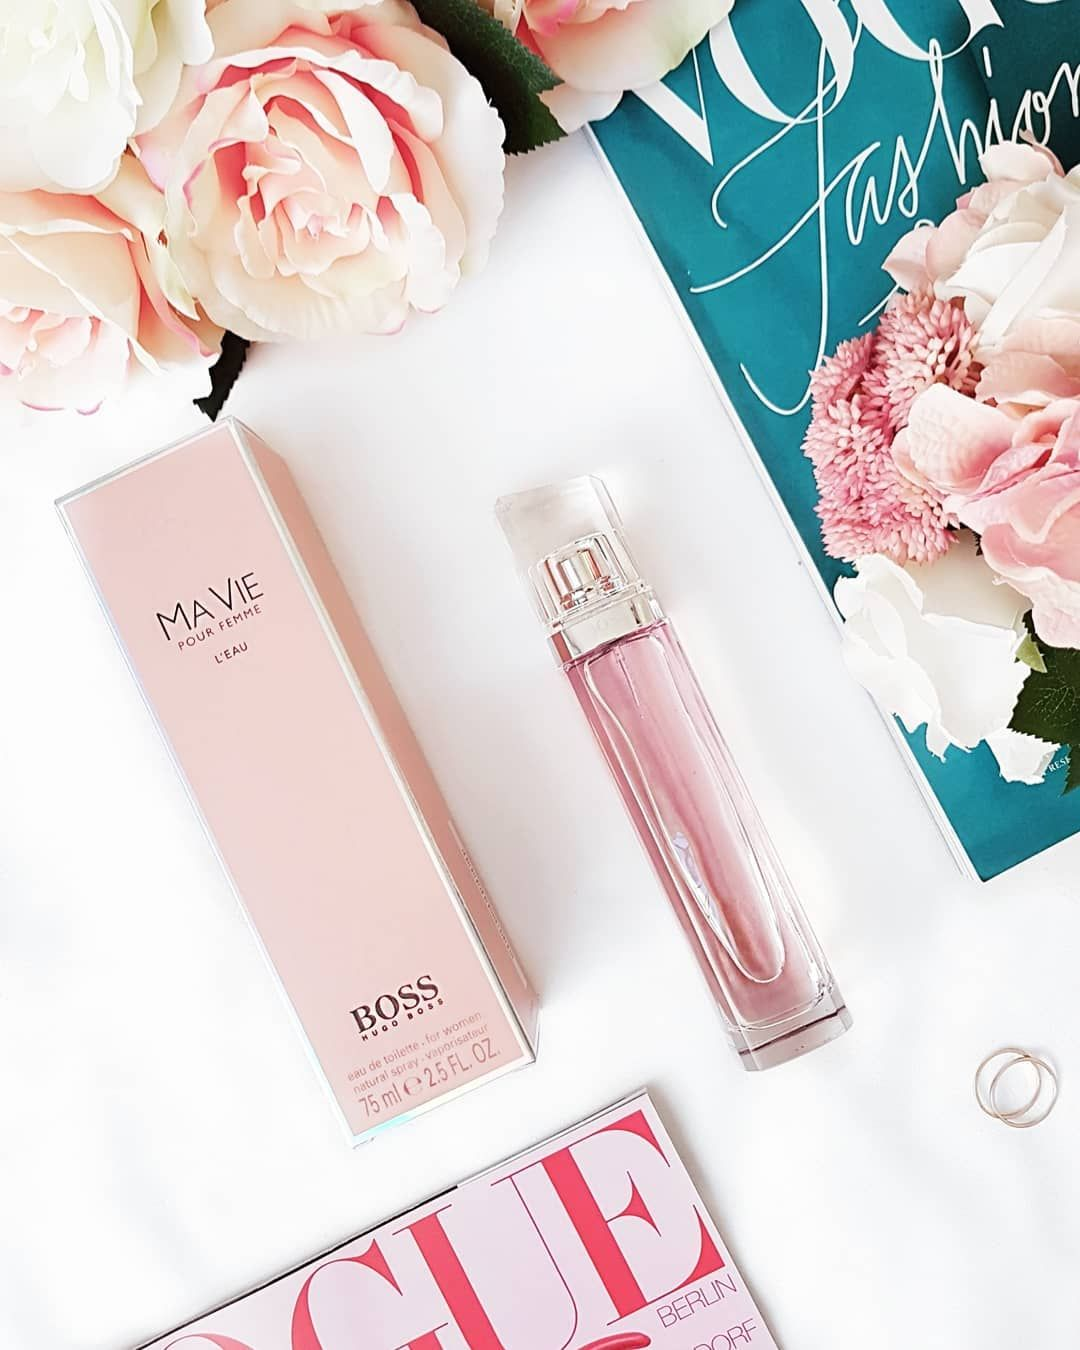 Hugo Boss Parfums Introduces Boss Ma Vie L Eau A Fresh And Luminous Fragrance Designed To Inspire Women To Recognize And Em Fragrance Design Parfume Fragrance